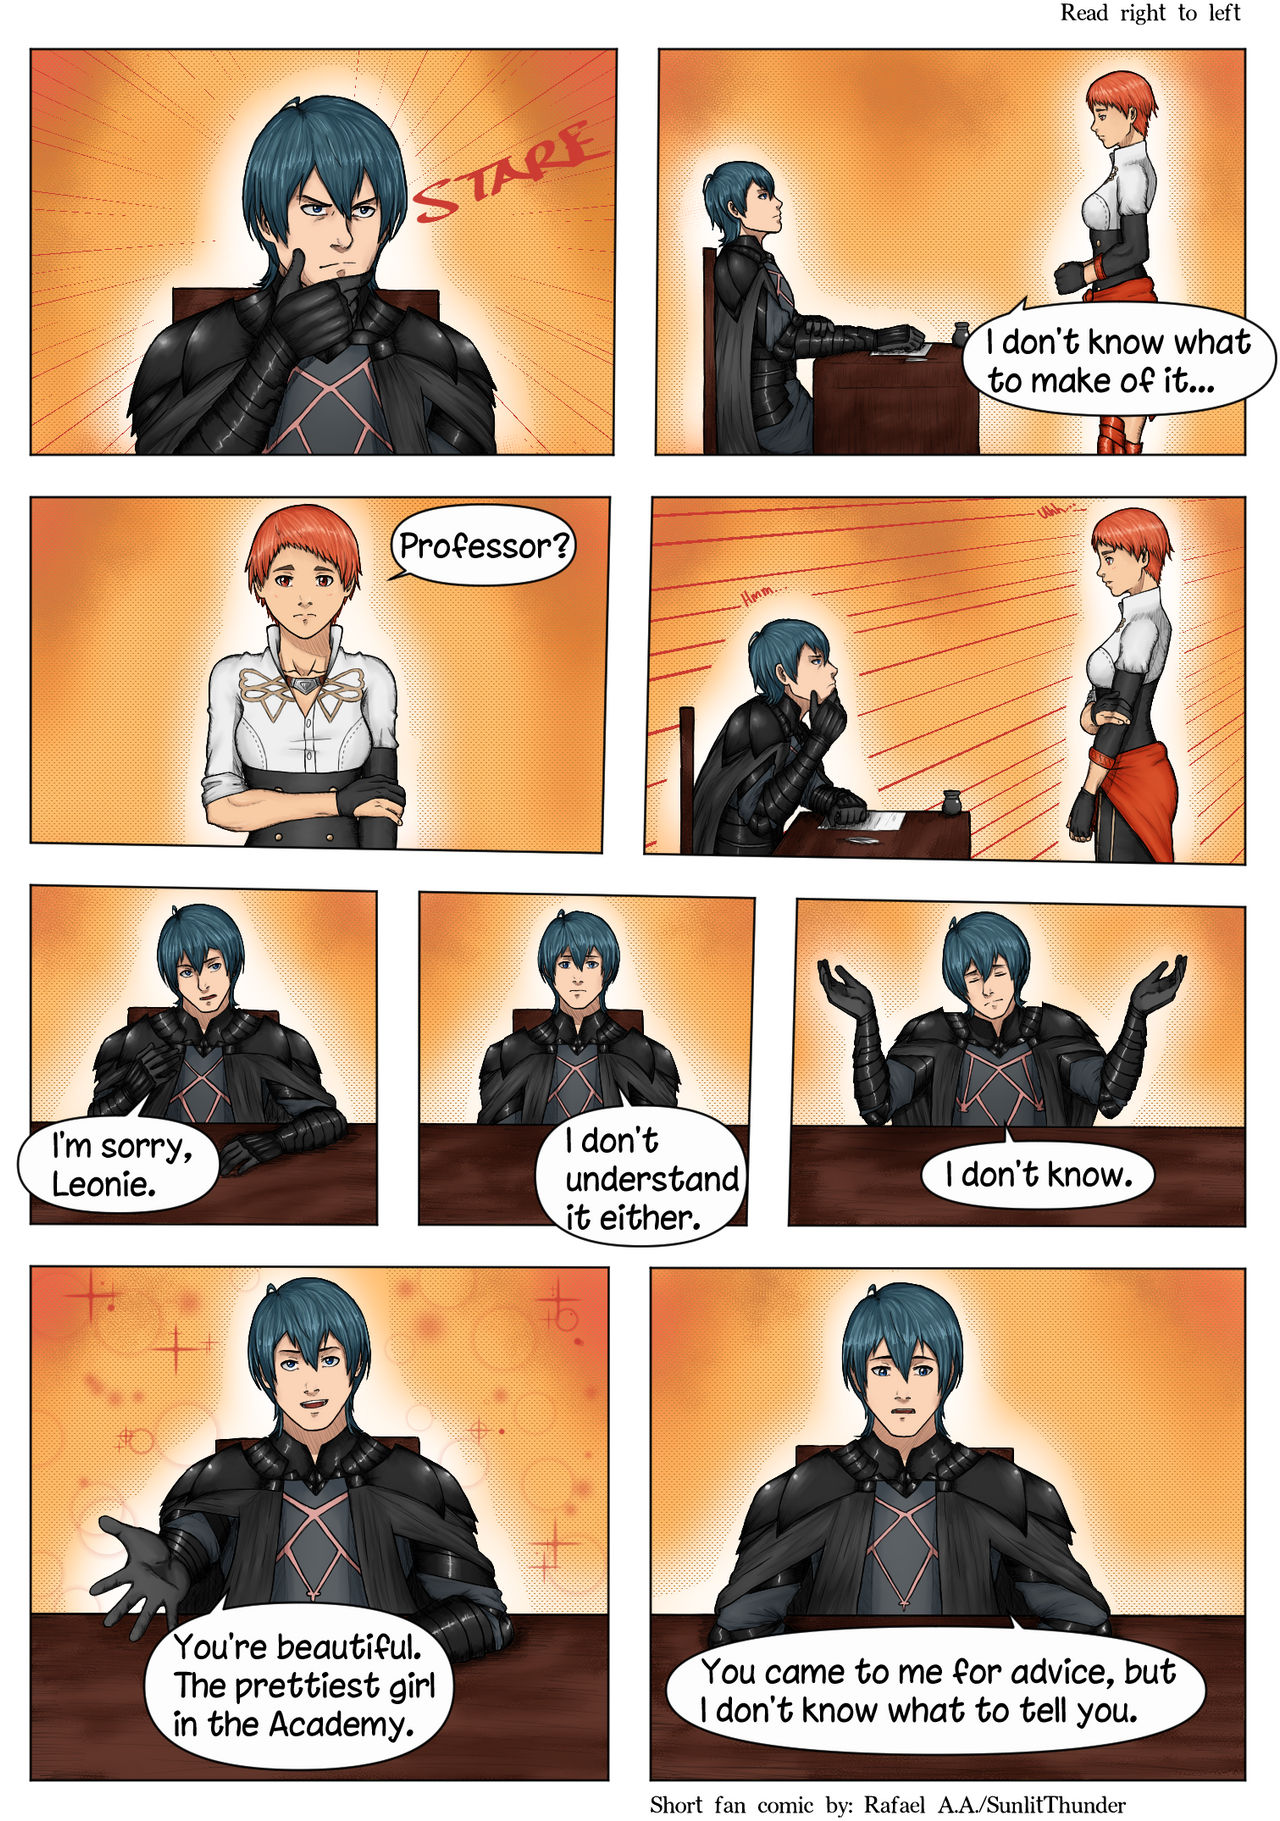 Ao54o5a7lg8vgm A subreddit to discuss the fire emblem series of games, and associated media. https www deviantart com sunlitthunder art fire emblem three houses leonie is a girl page 2 4 811105255